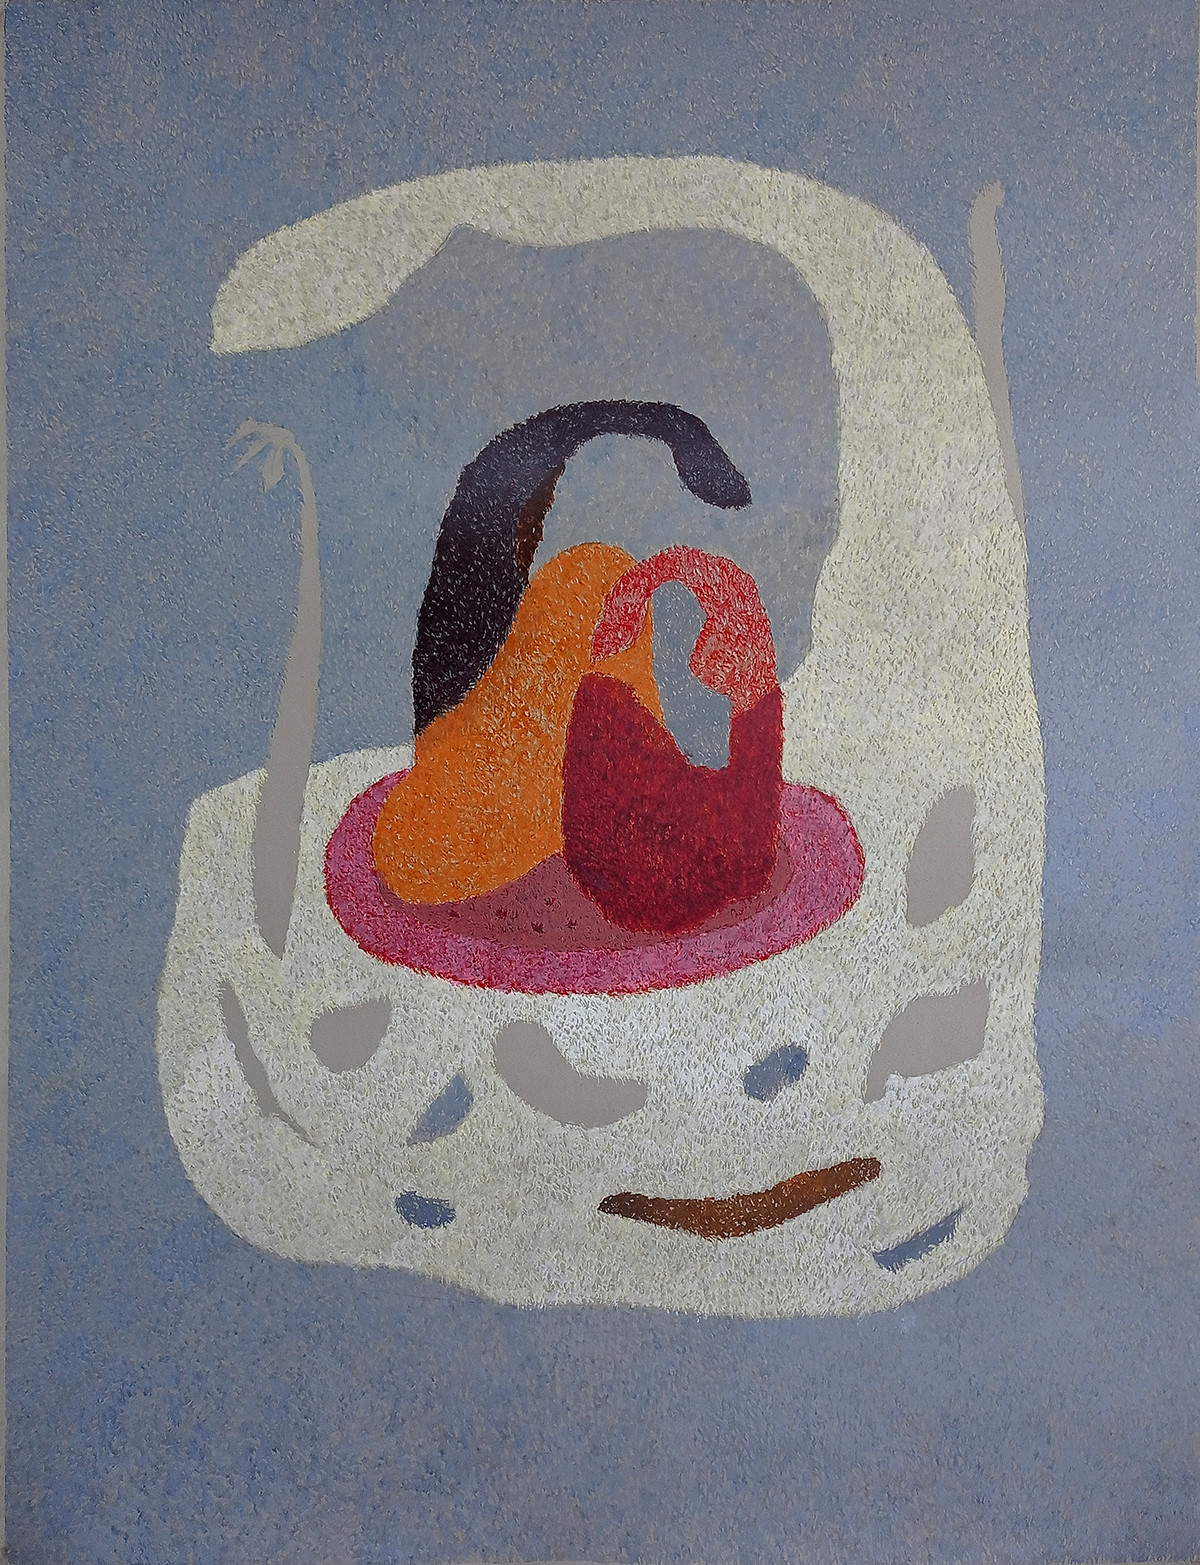 growth by ashwini patil, Abstract Painting, Acrylic on Paper, Raven color